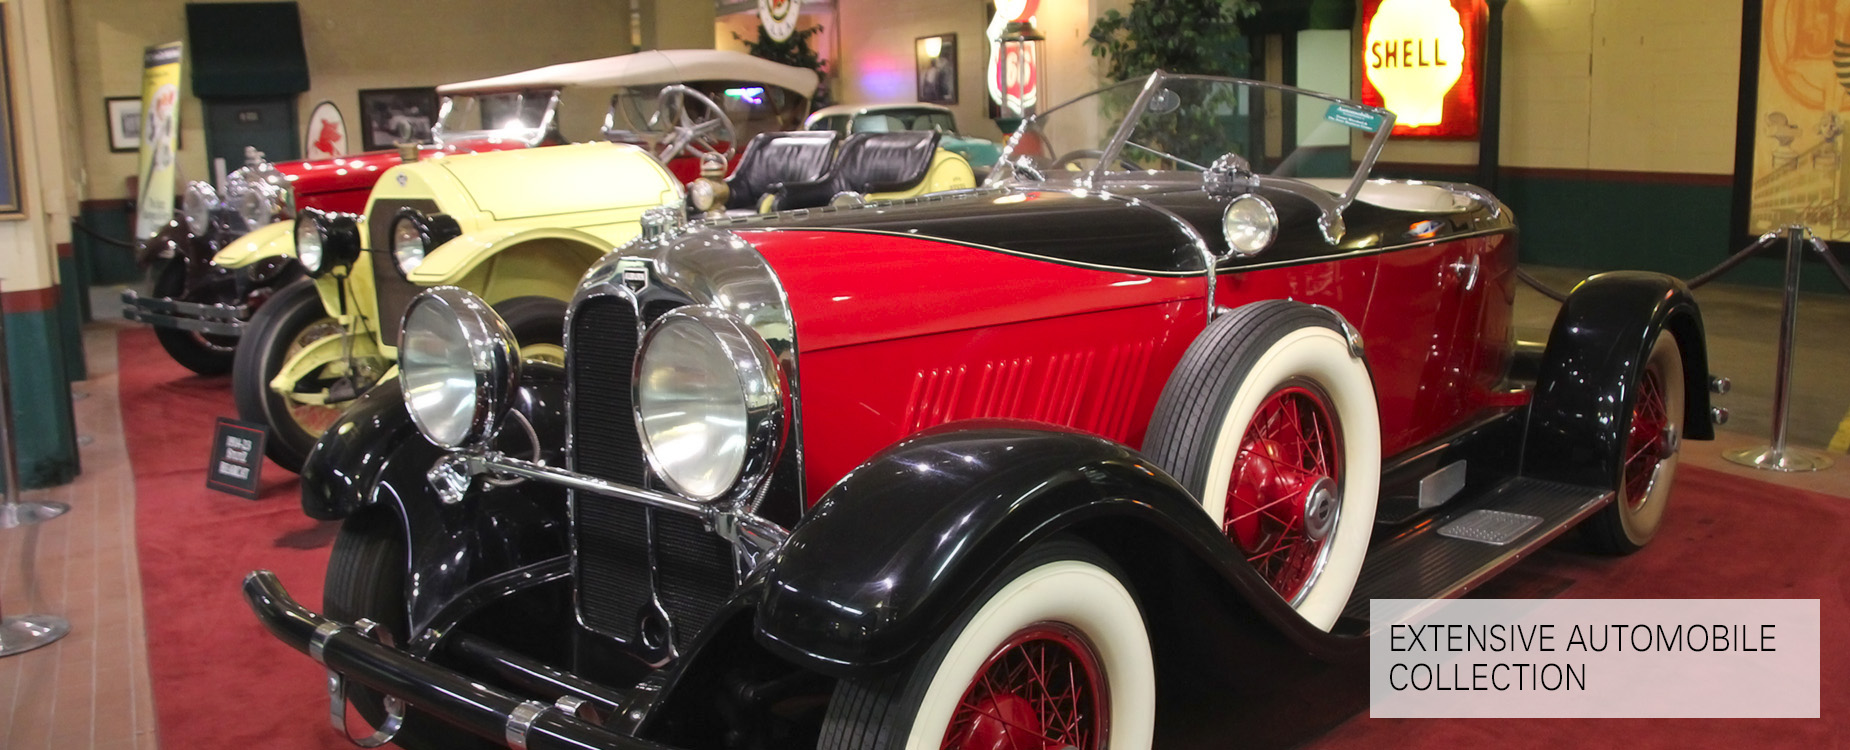 Turner Woodard's Extensive Automobile Collection